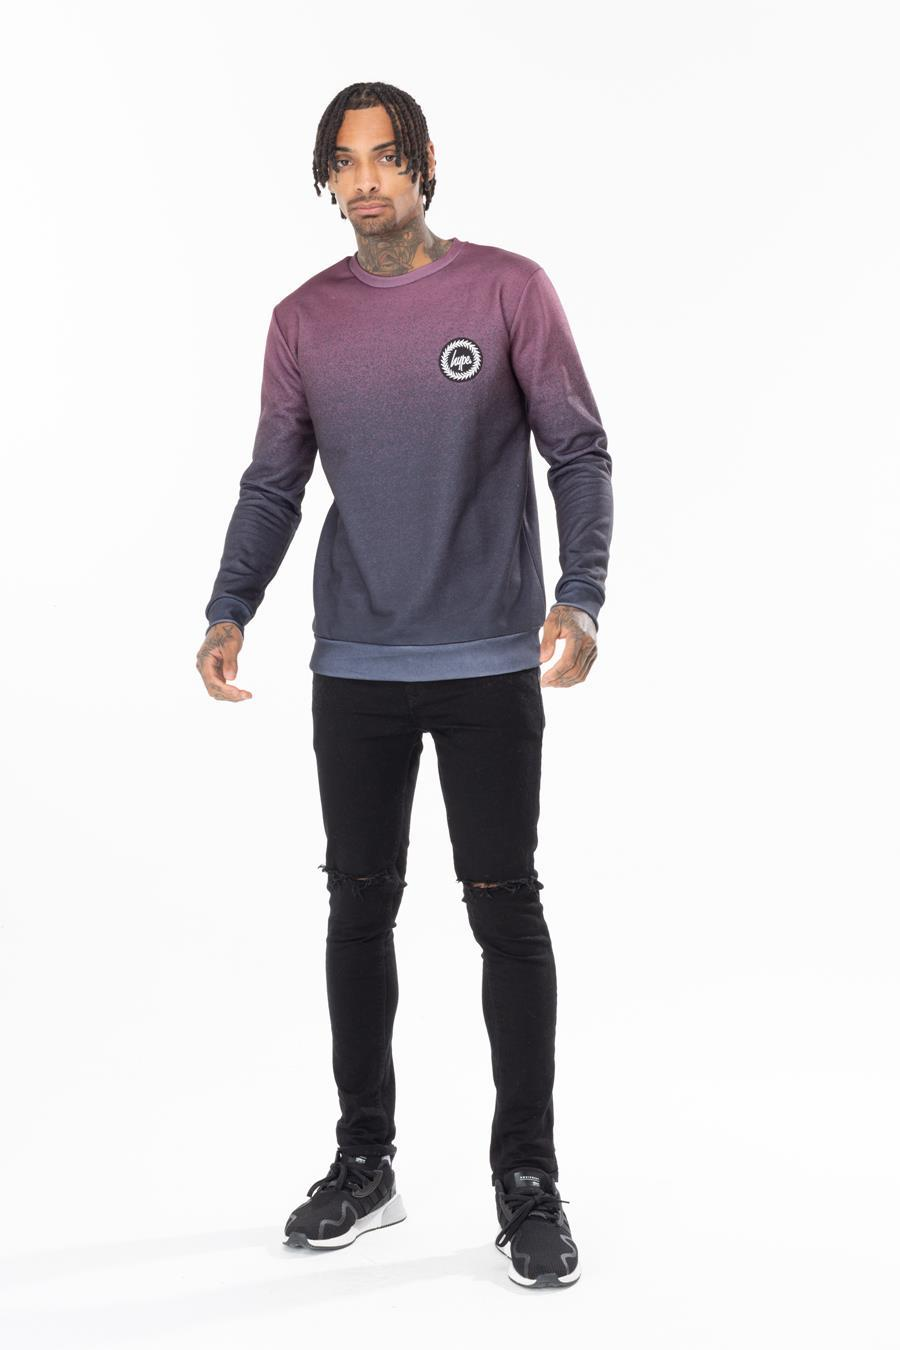 HYPE MEN´S BURGUNDY SPECKLE FADE CREWNECK